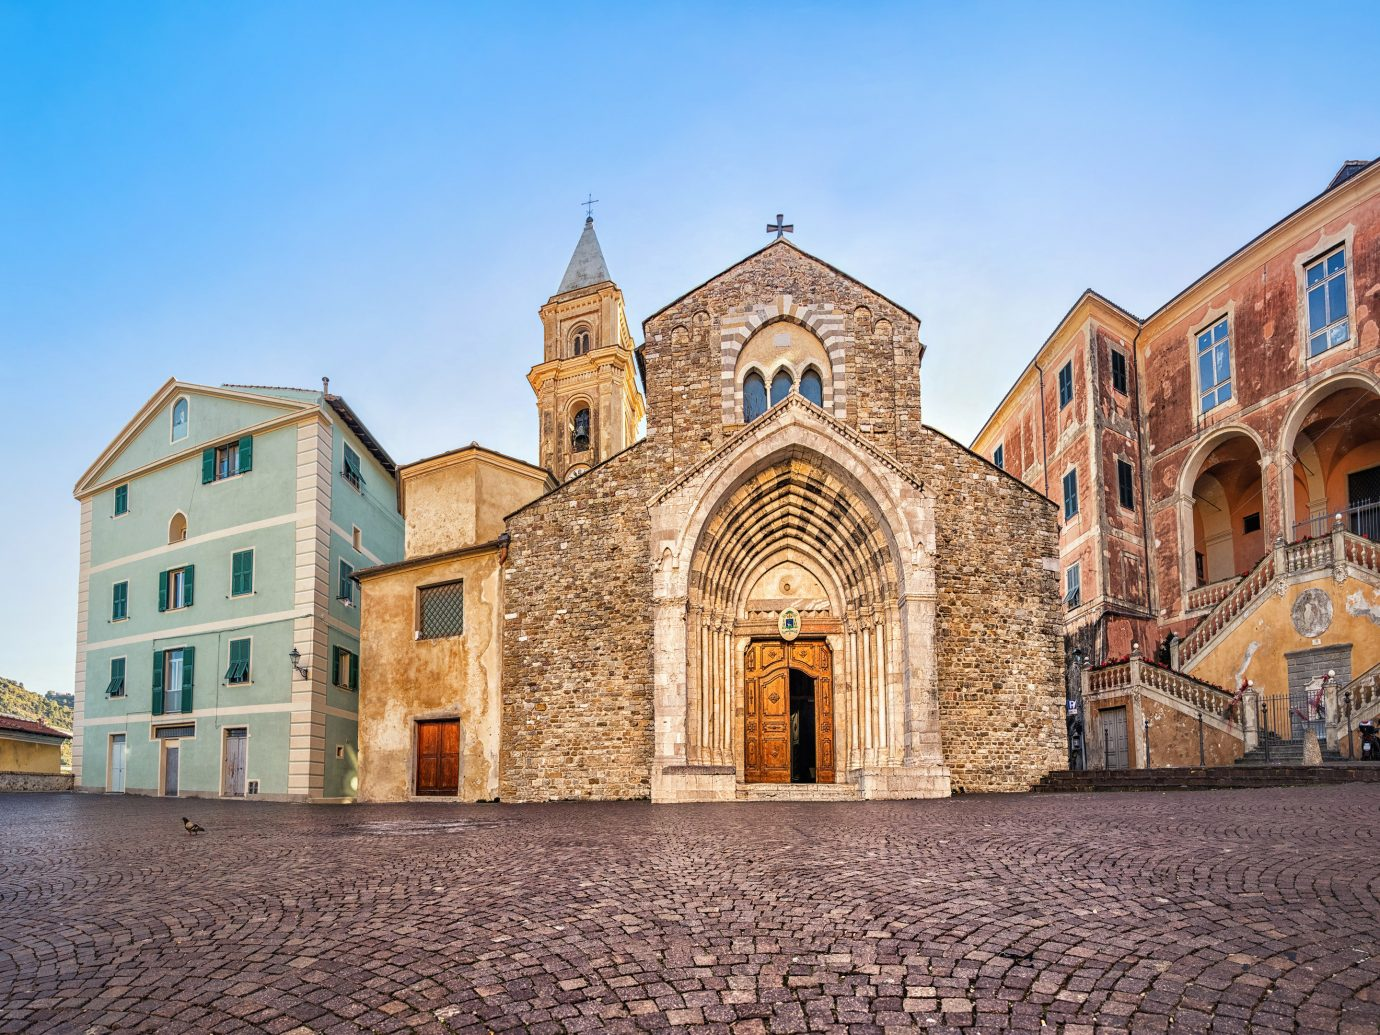 Italy Trip Ideas sky building landmark medieval architecture Town historic site Church place of worship cathedral facade town square history basilica City chapel abbey window arch parish estate middle ages tourism